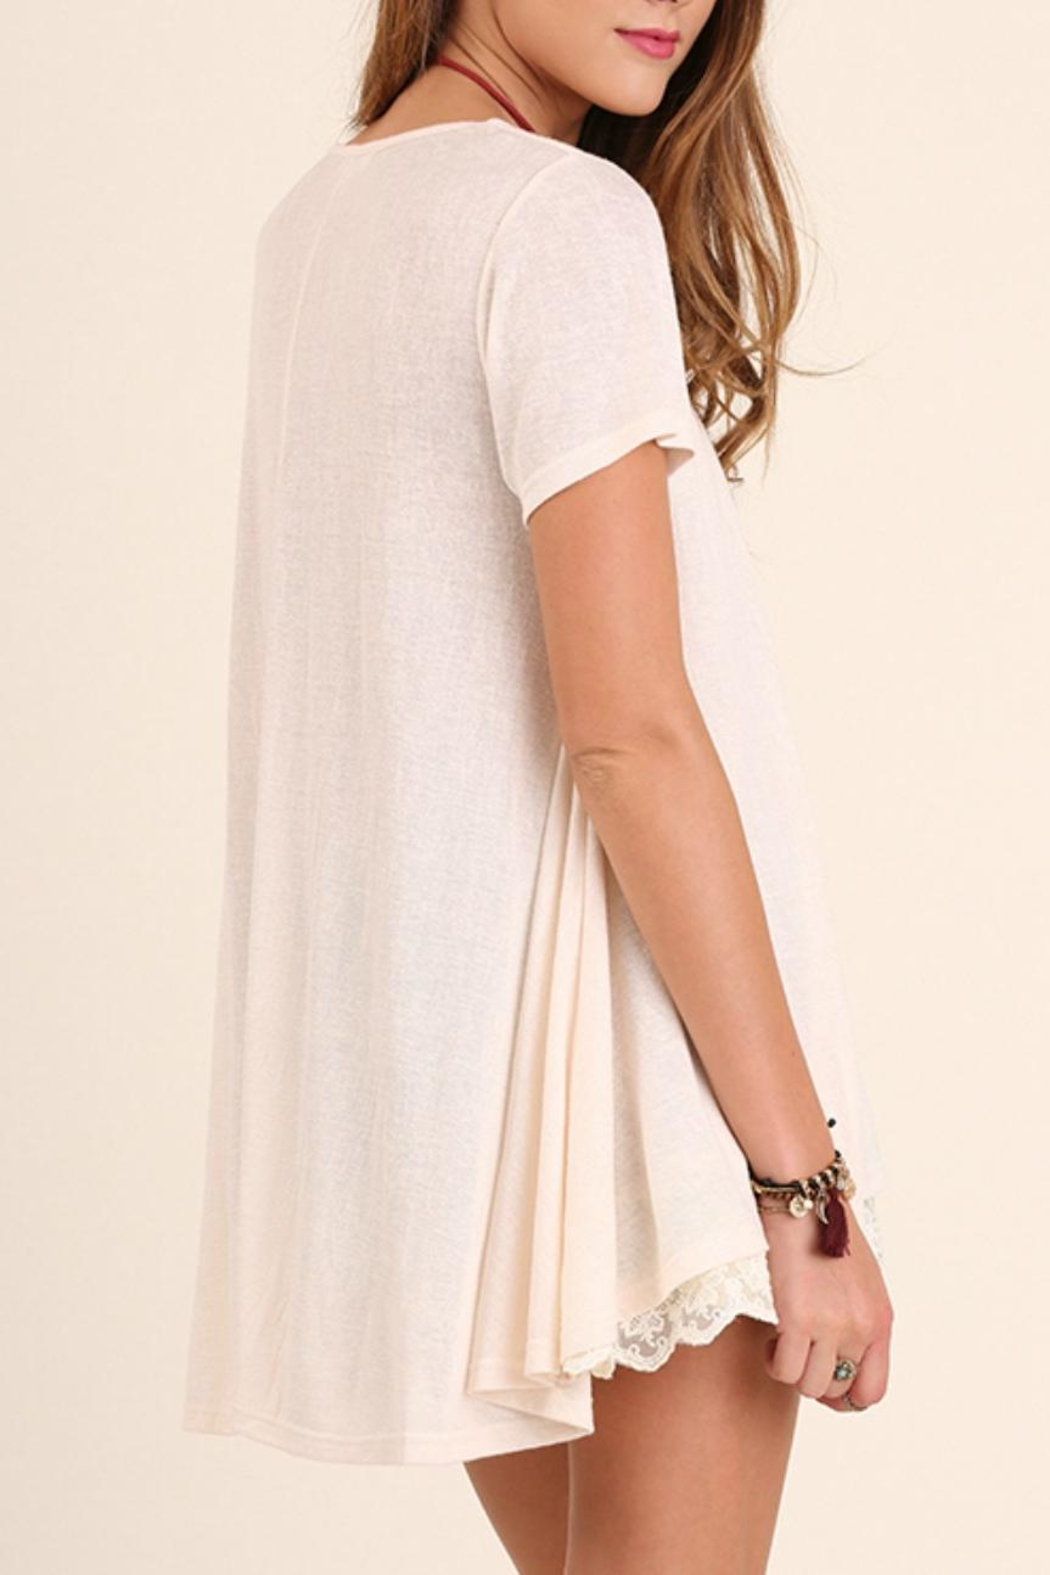 Umgee USA Lace Trim Tunic Top - Front Full Image